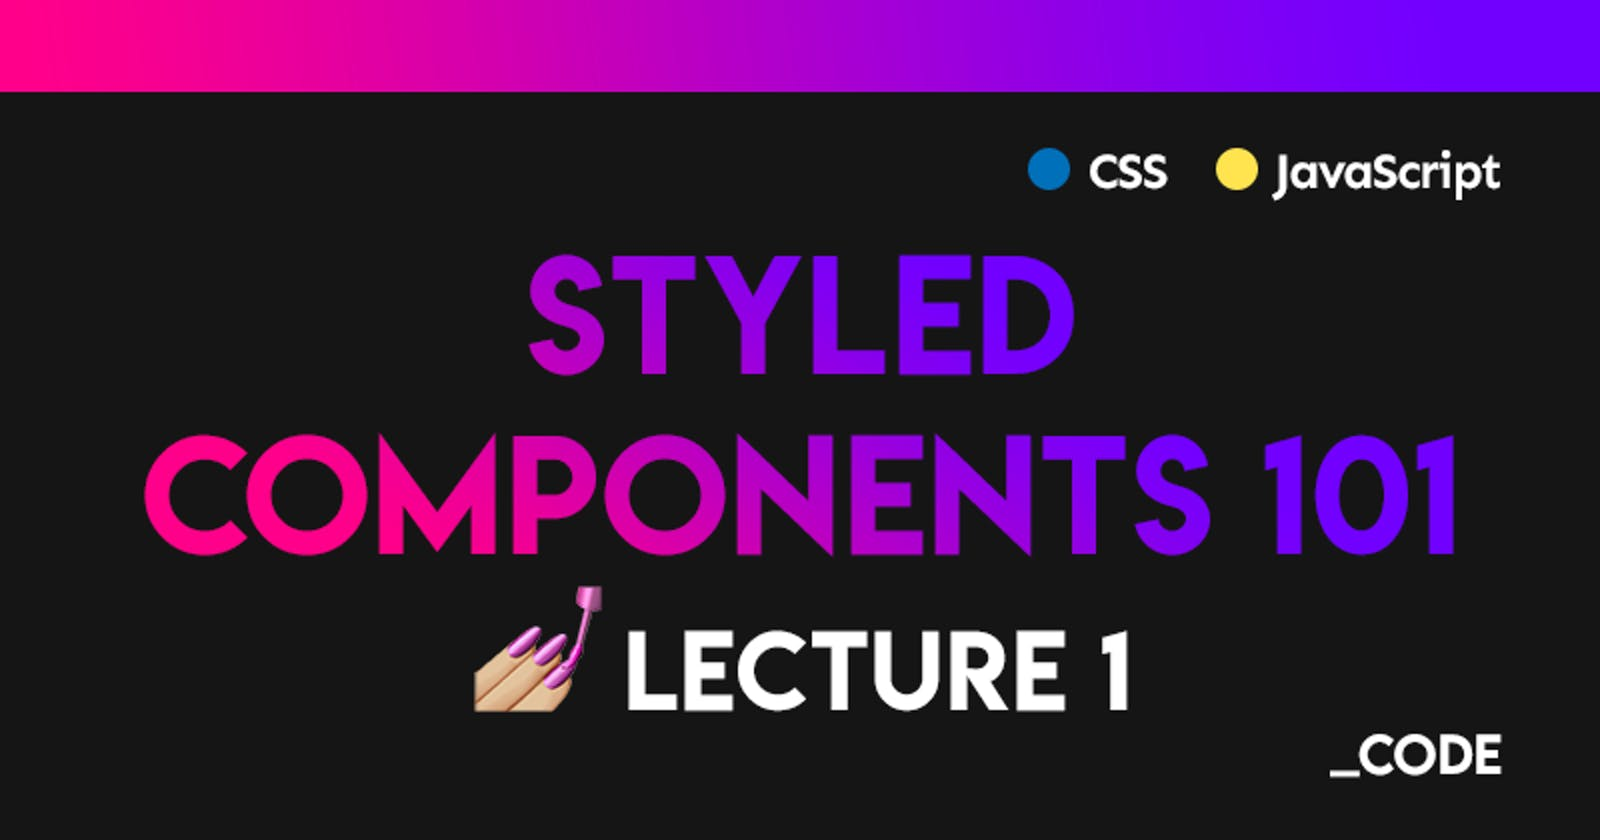 Styled Components 101 💅 Lecture 1: Introduction + Setup in a React Environment ⚛️